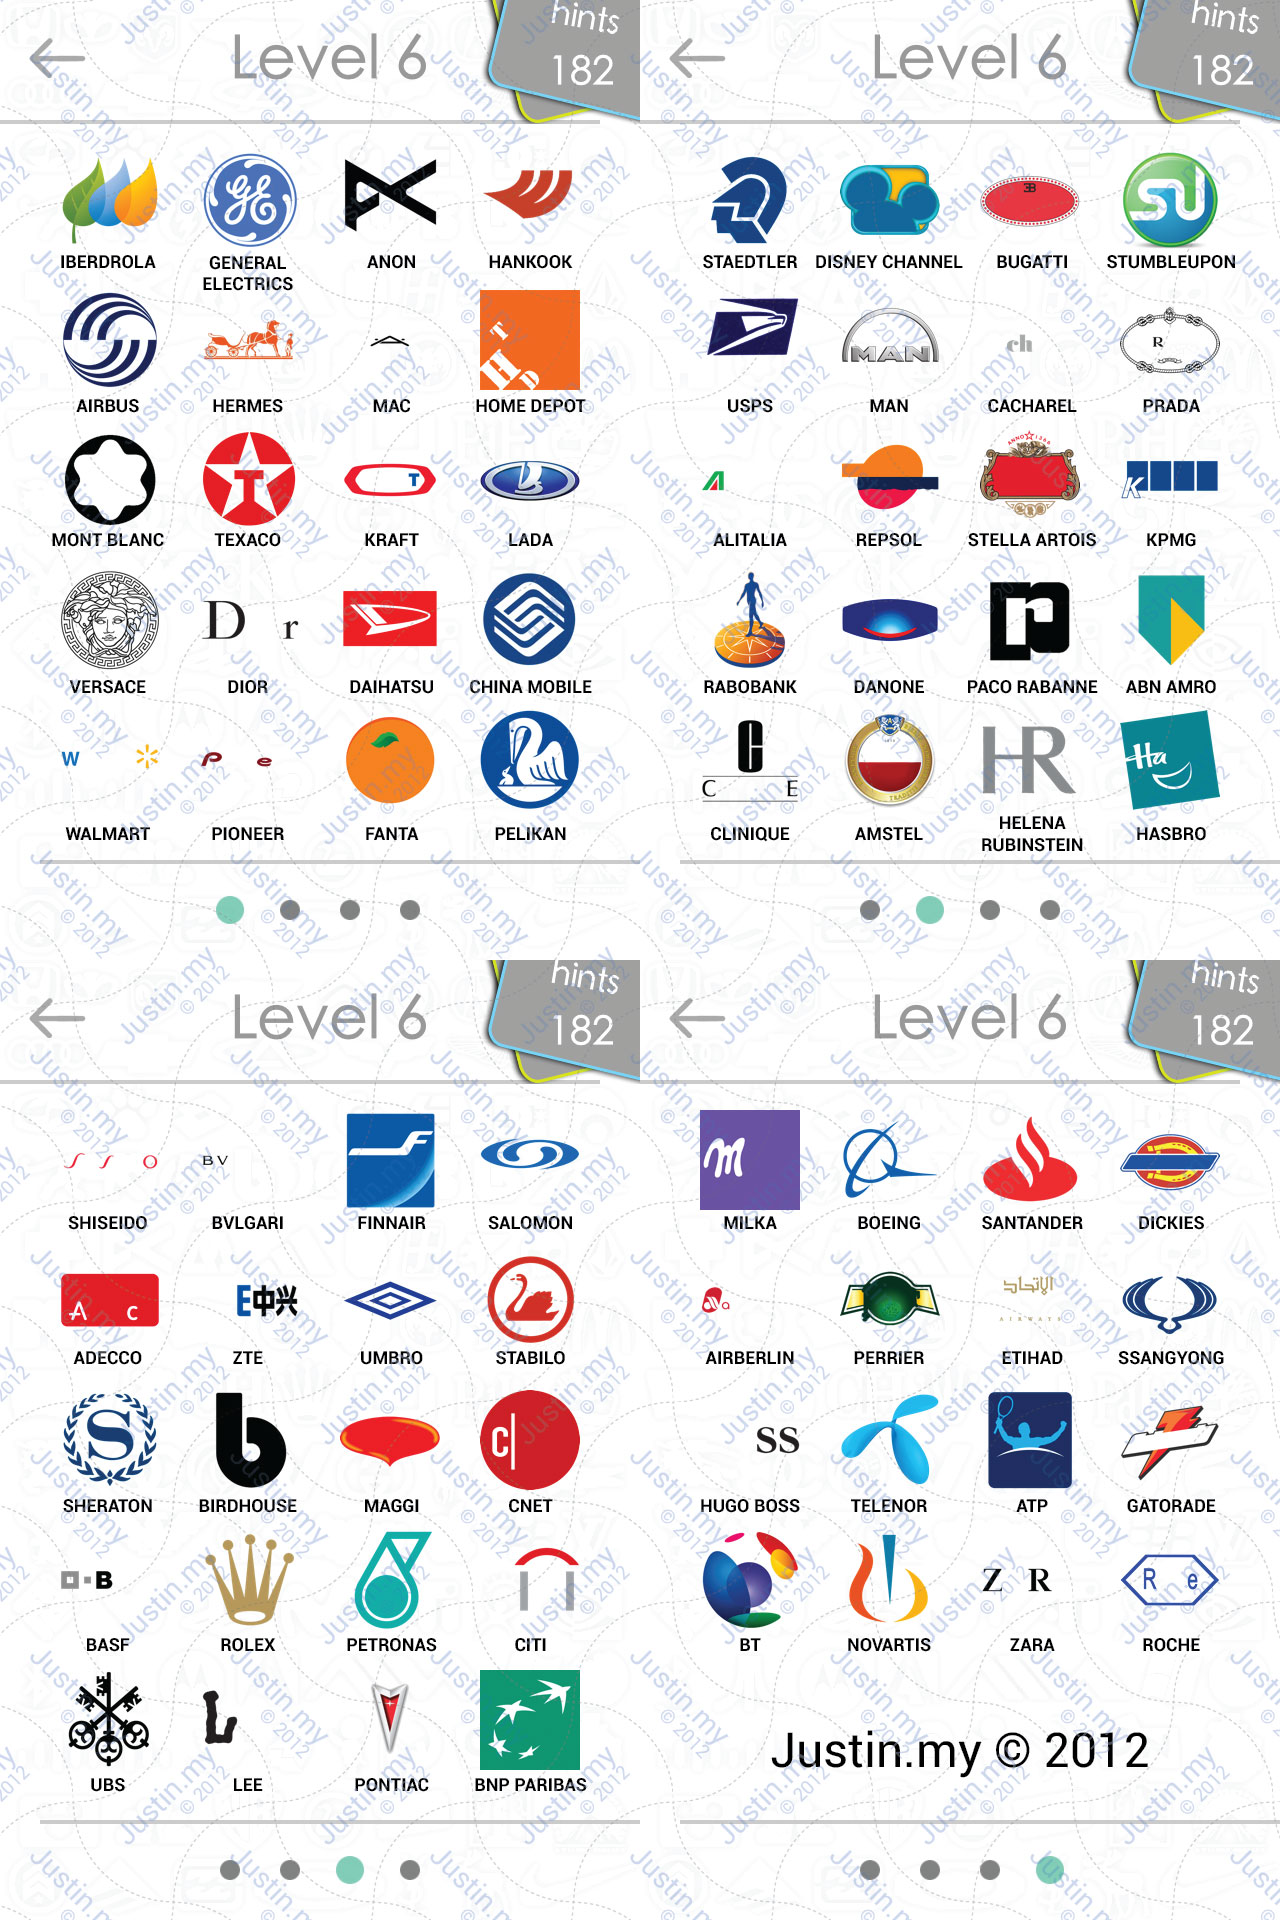 logos quiz answers for iphone ipad ipod android app